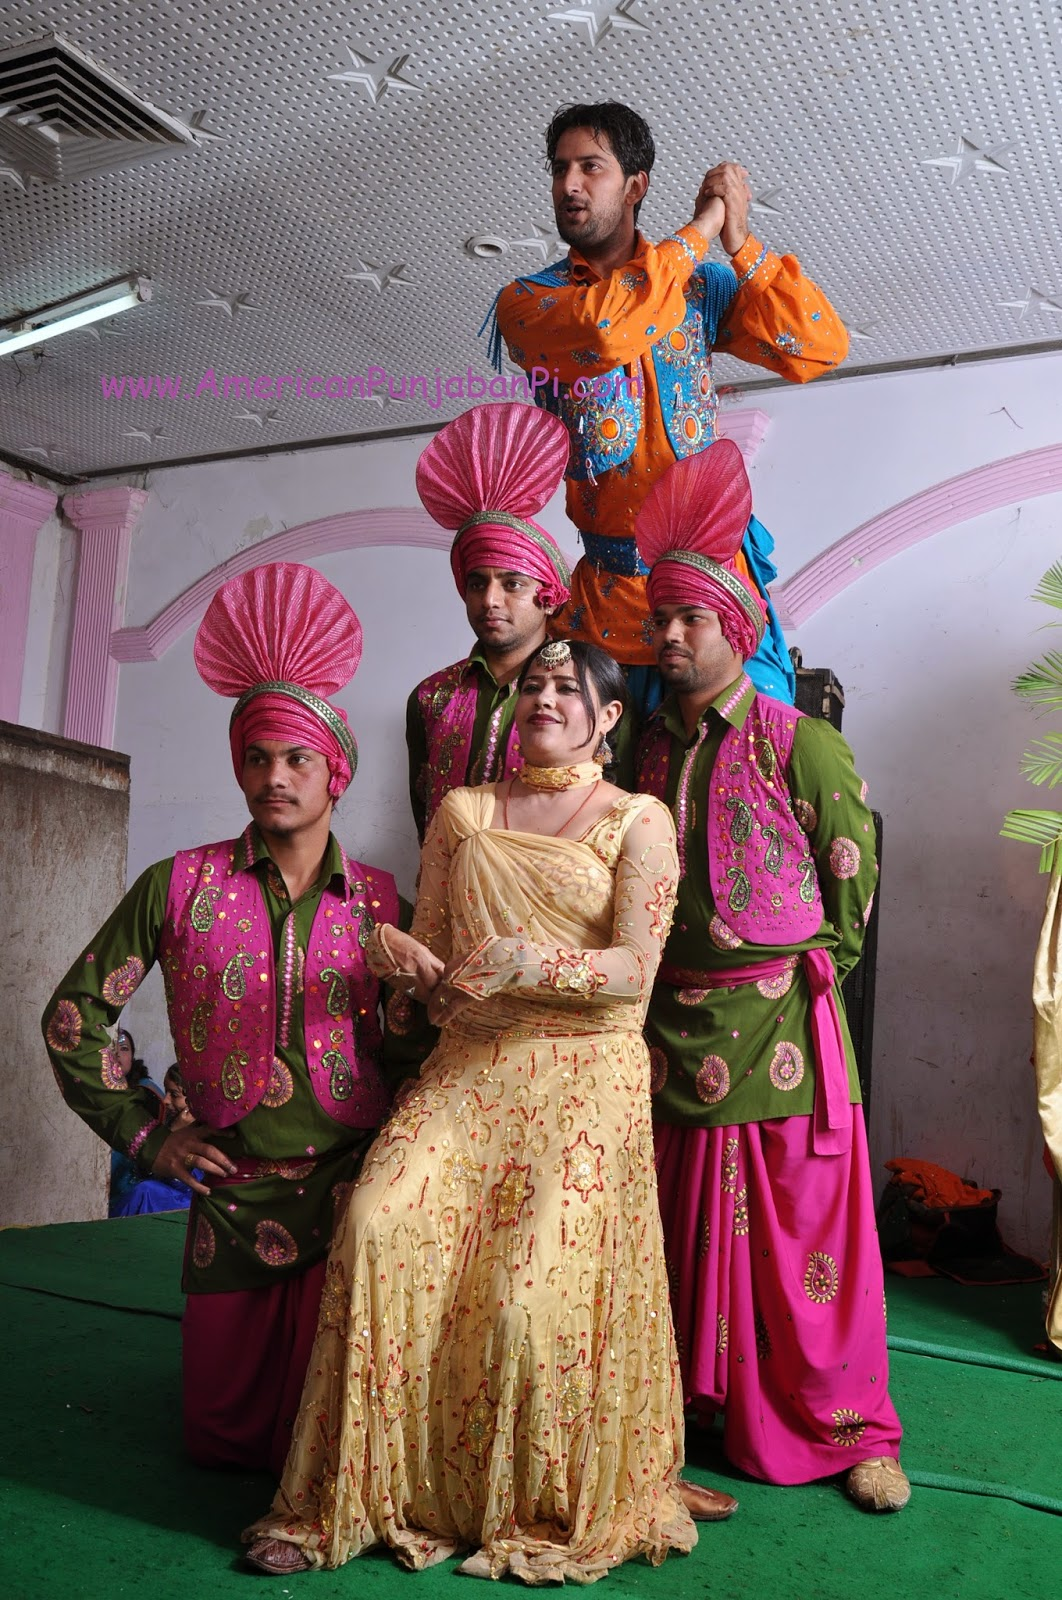 bhangra dancers Punjab India wedding